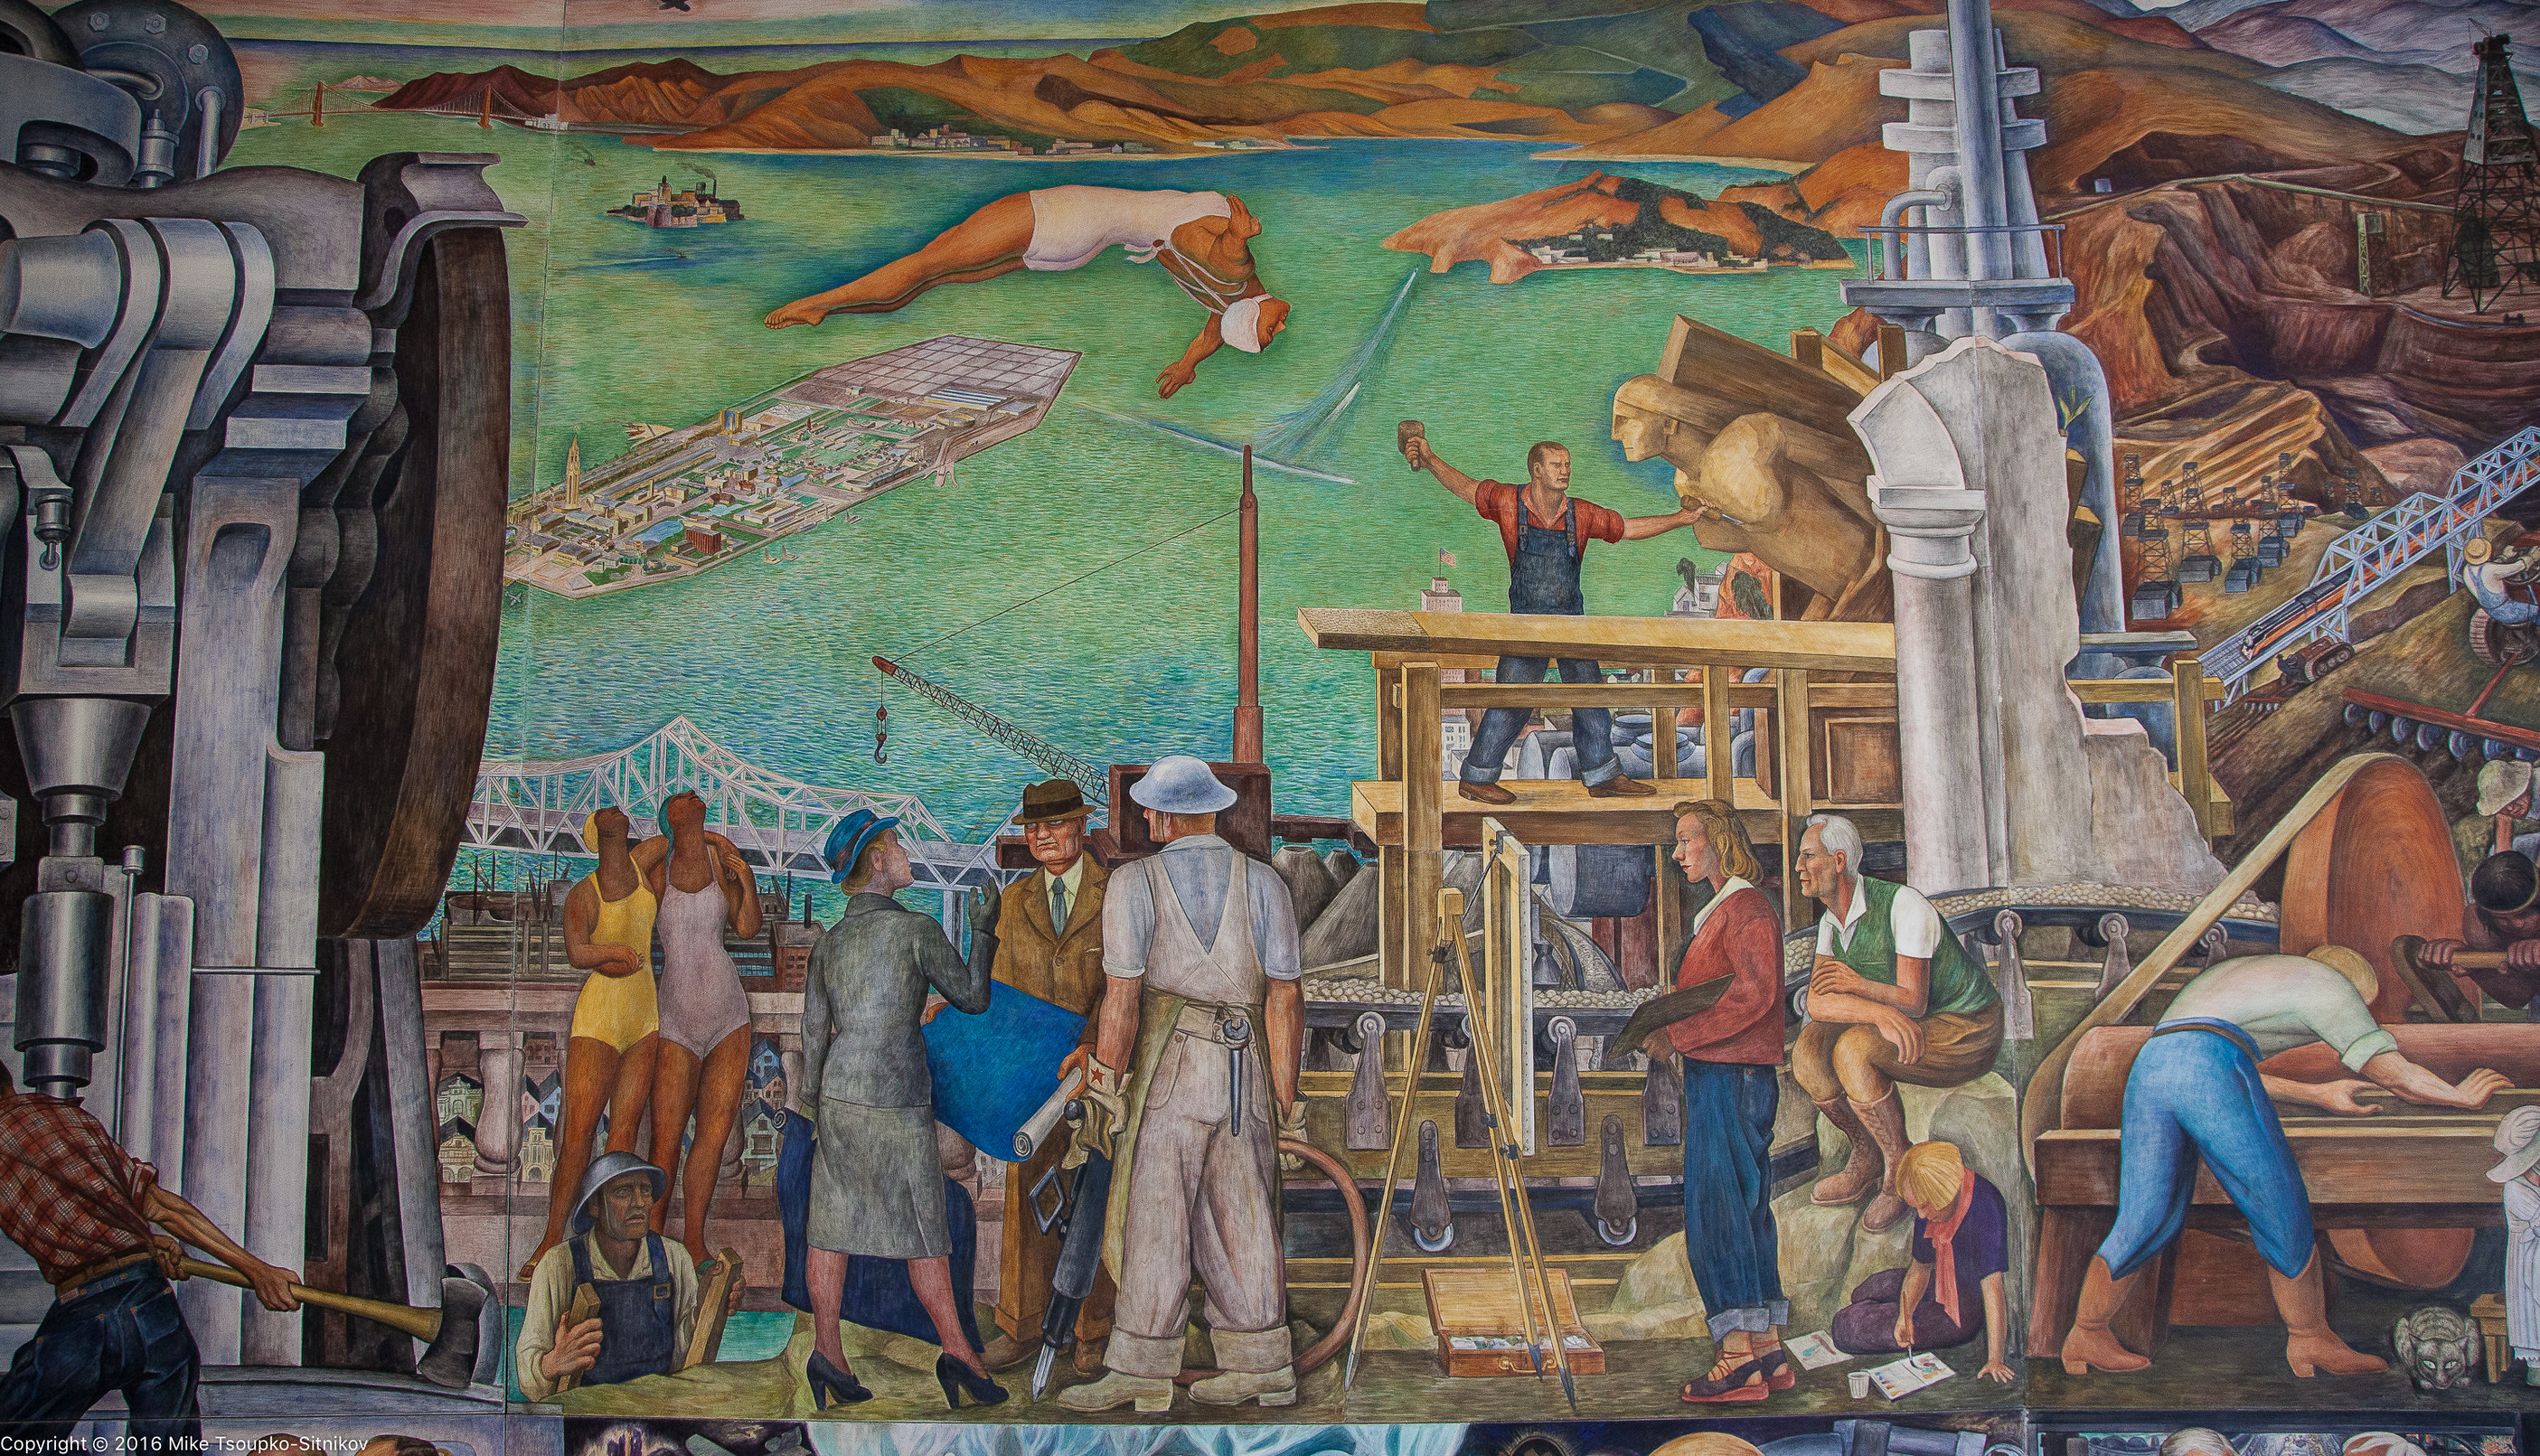 Diego rivera in san francisco demerjee travels more for Diego rivera mural in san francisco